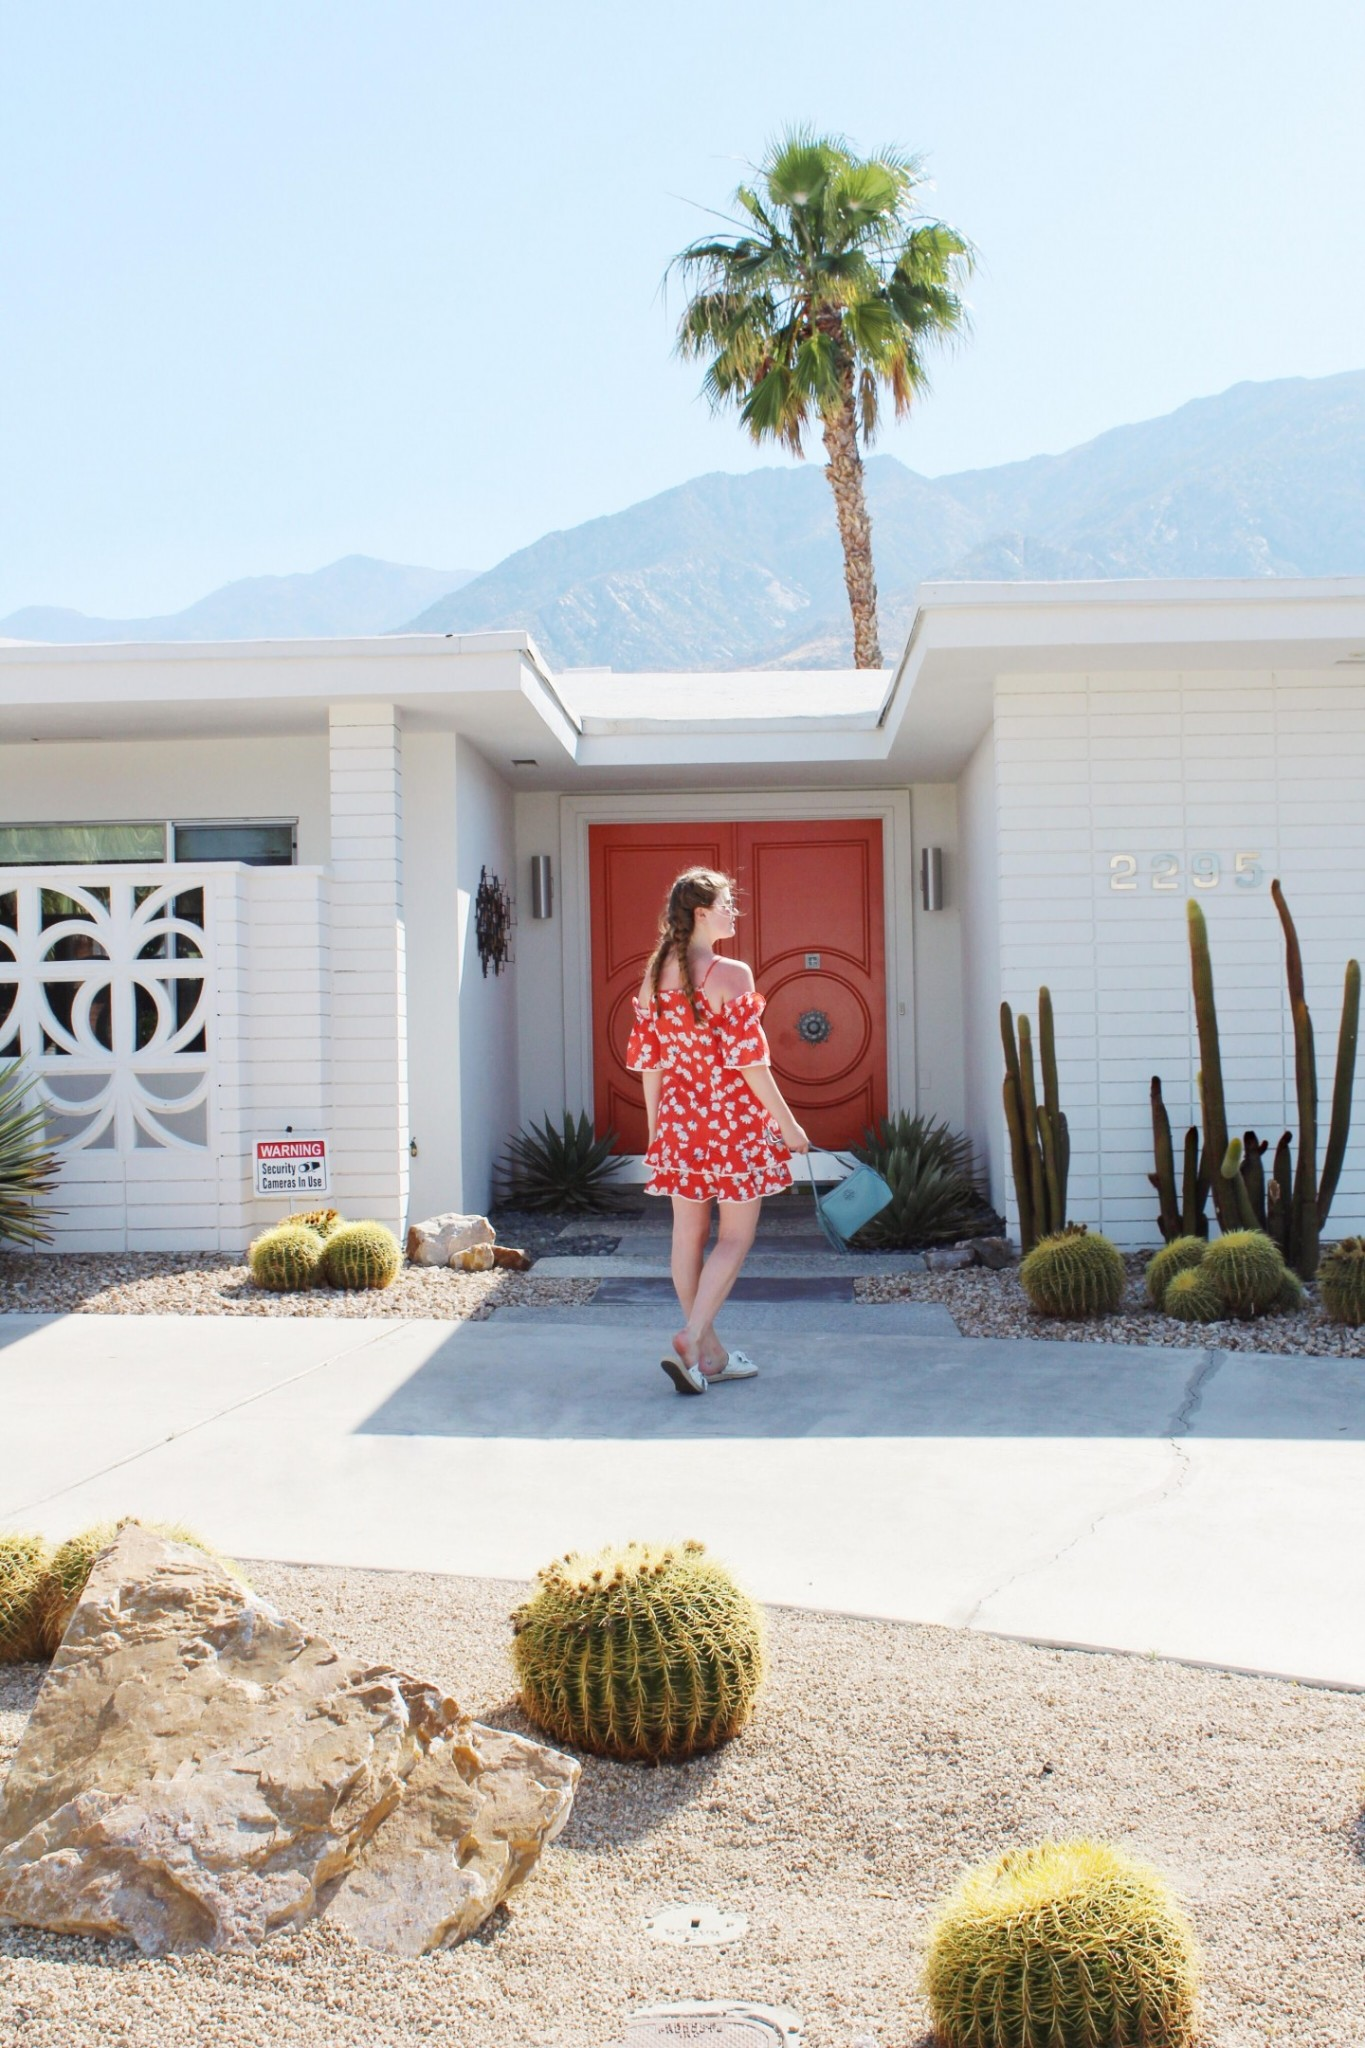 Lifestyle blogger Mollie Moore shares a summer look in Palm Springs